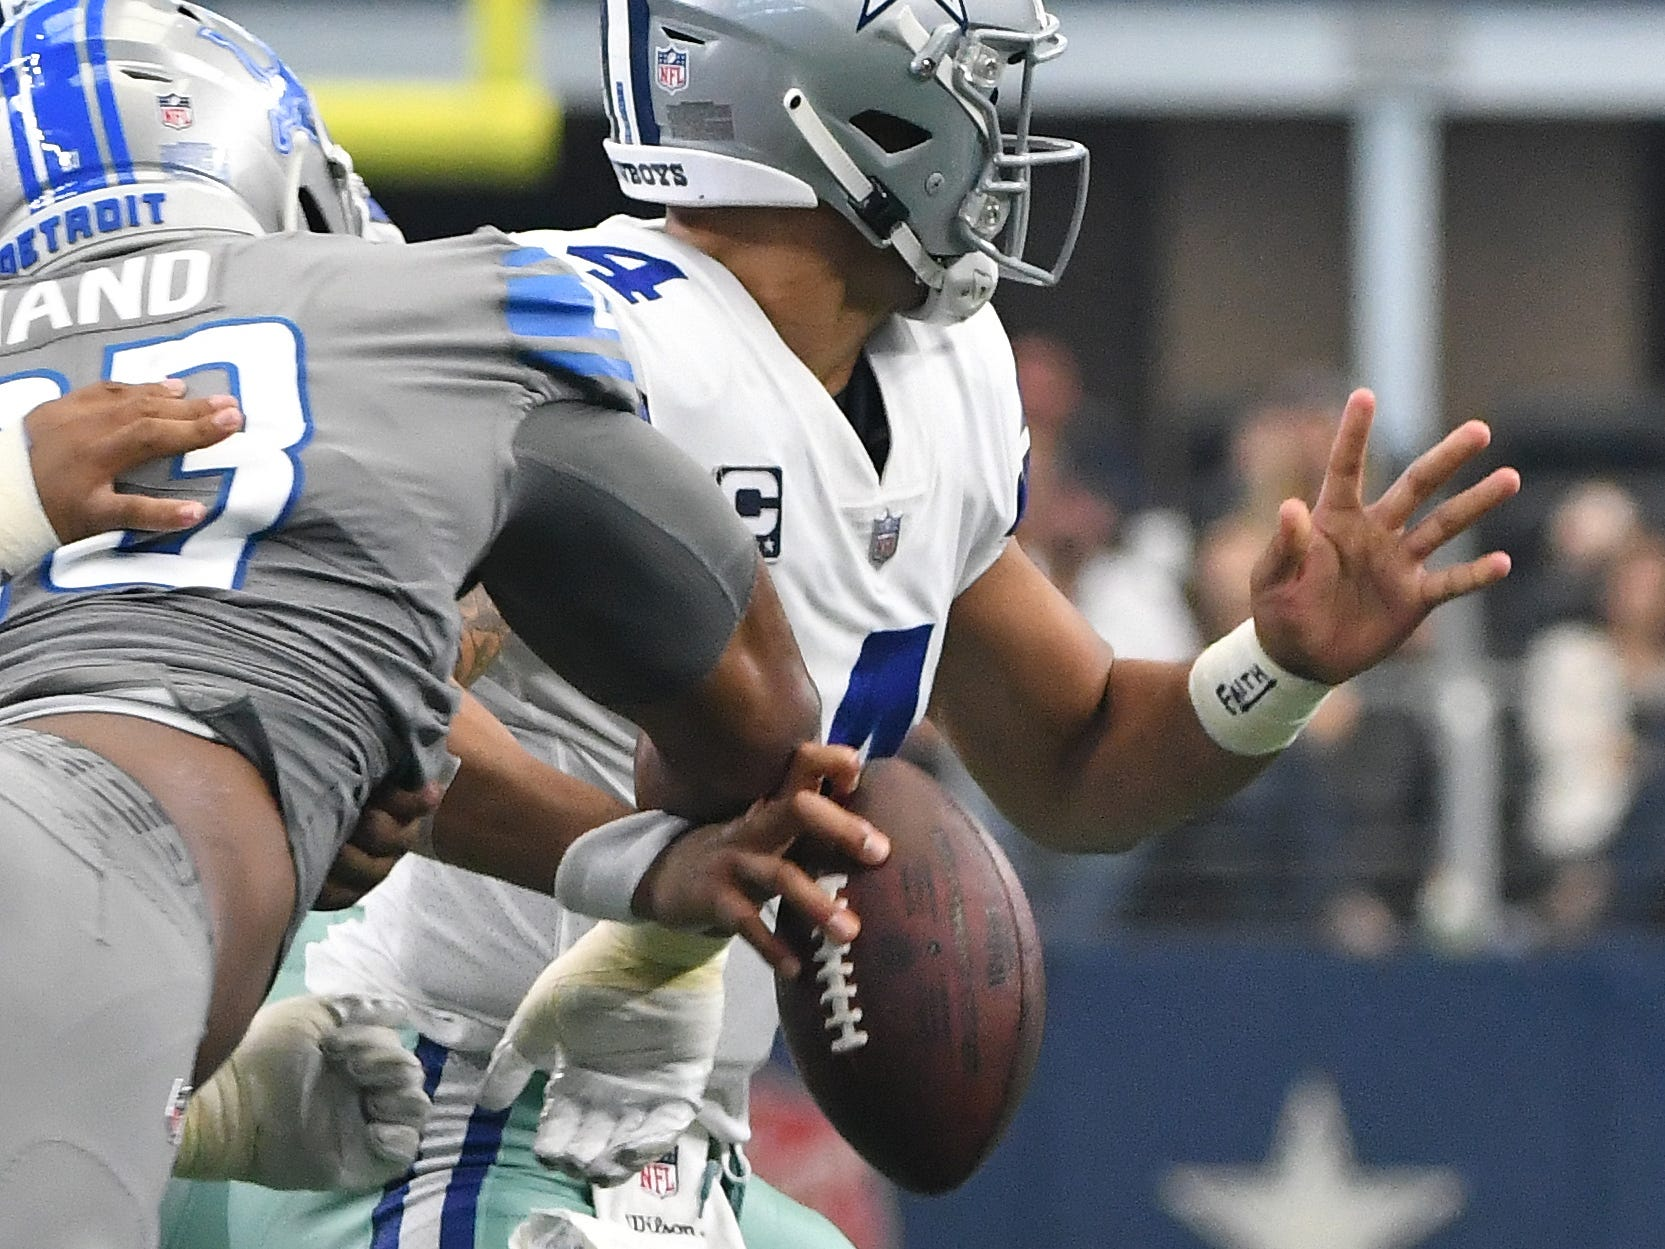 Lions defensive lineman Da'Shawn Hand gets a hand on Cowboys quarterback Das Prescott's hand, forcing the fumble which Prescott was able to recover and then throw it away to avoid the loss yardage on the final drive of the game in the fourth quarter.